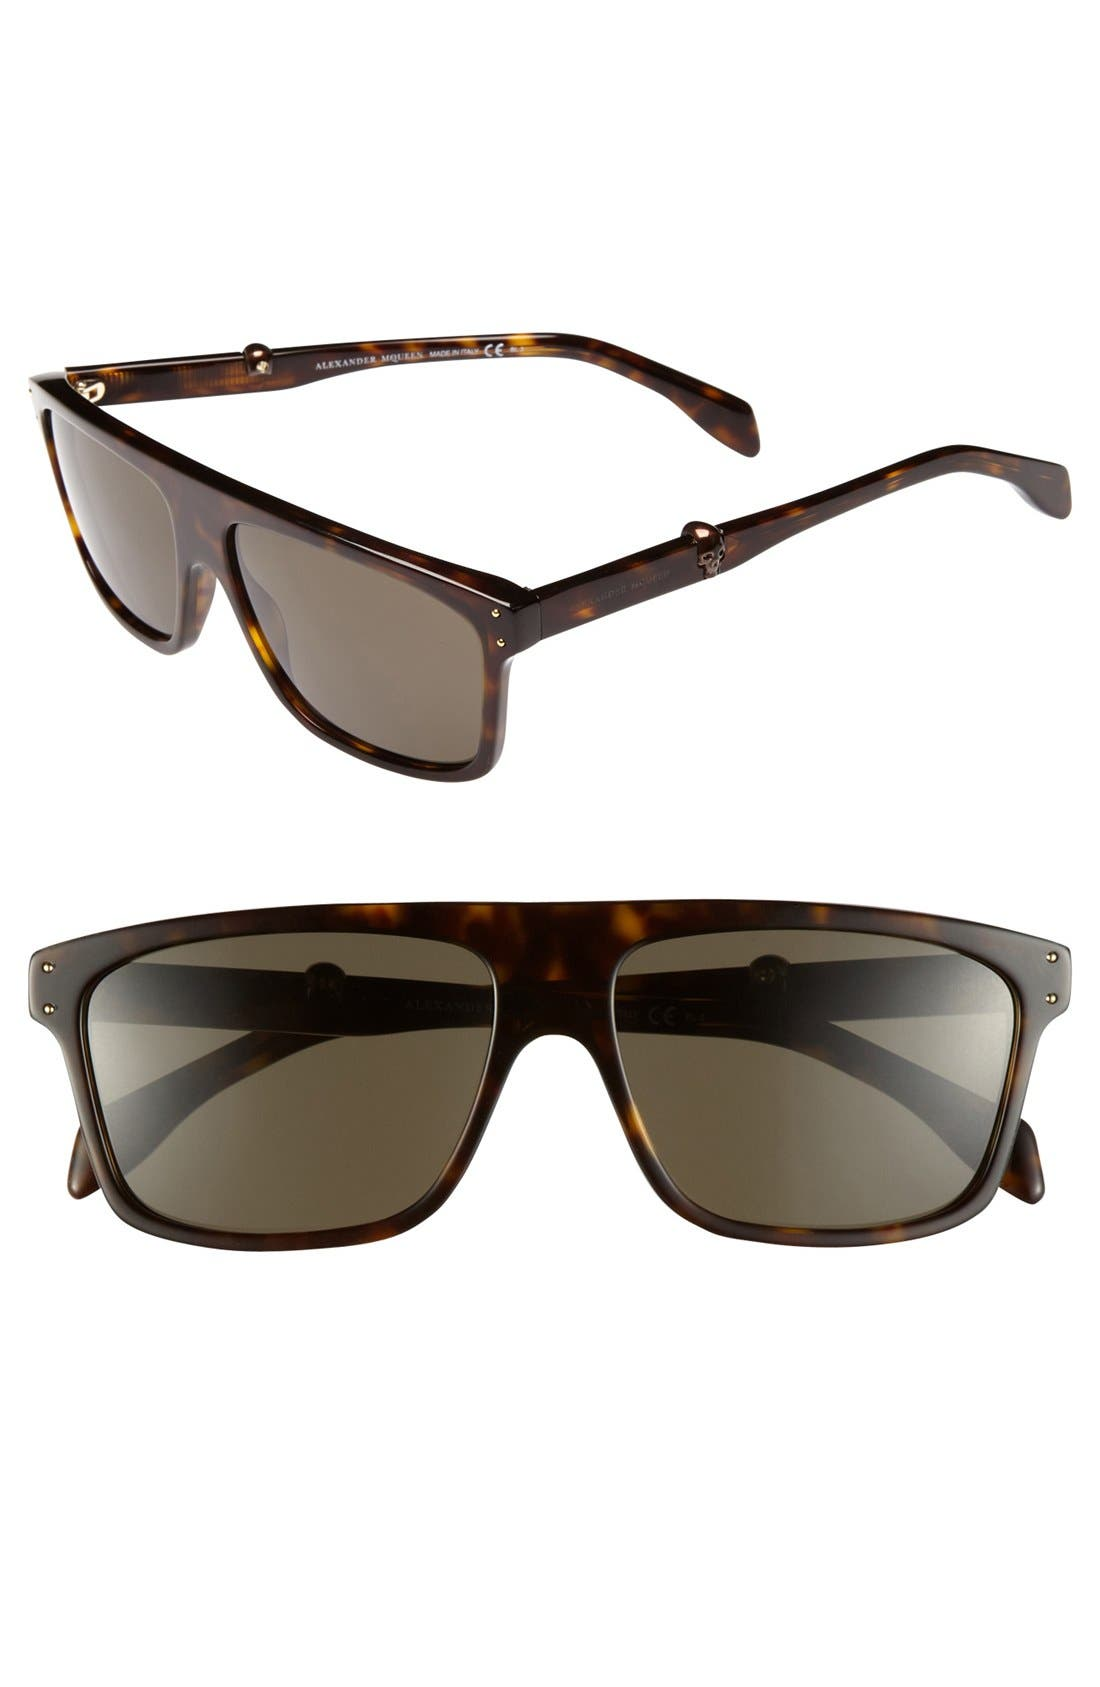 Main Image - Alexander McQueen 57mm Sunglasses